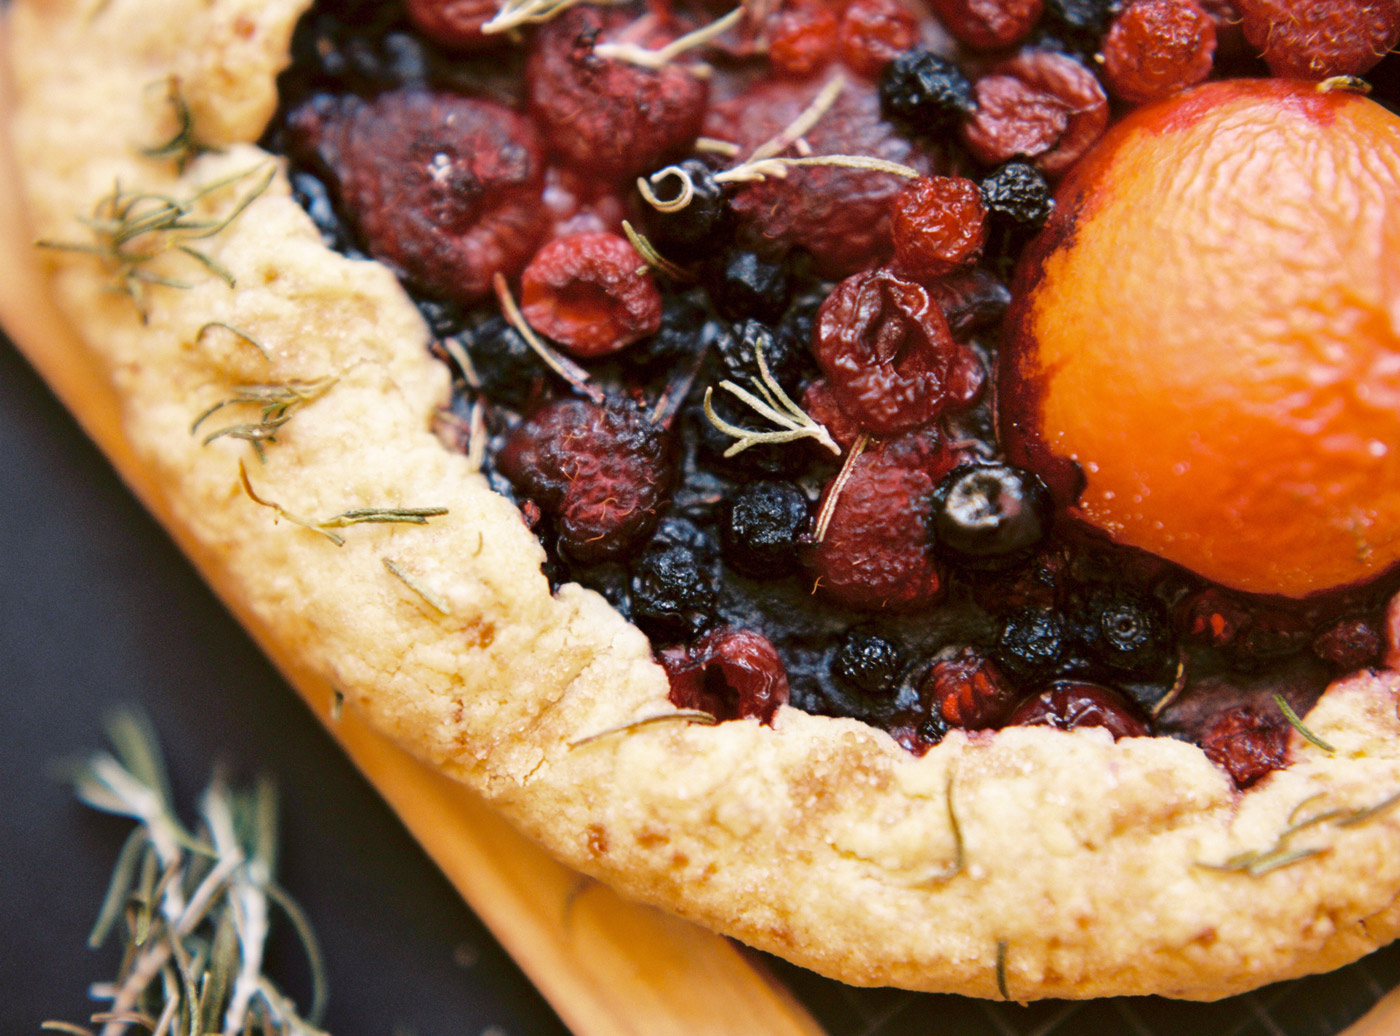 Blanccoco_Rustic_pie_styliste_photographe_culinaire-28